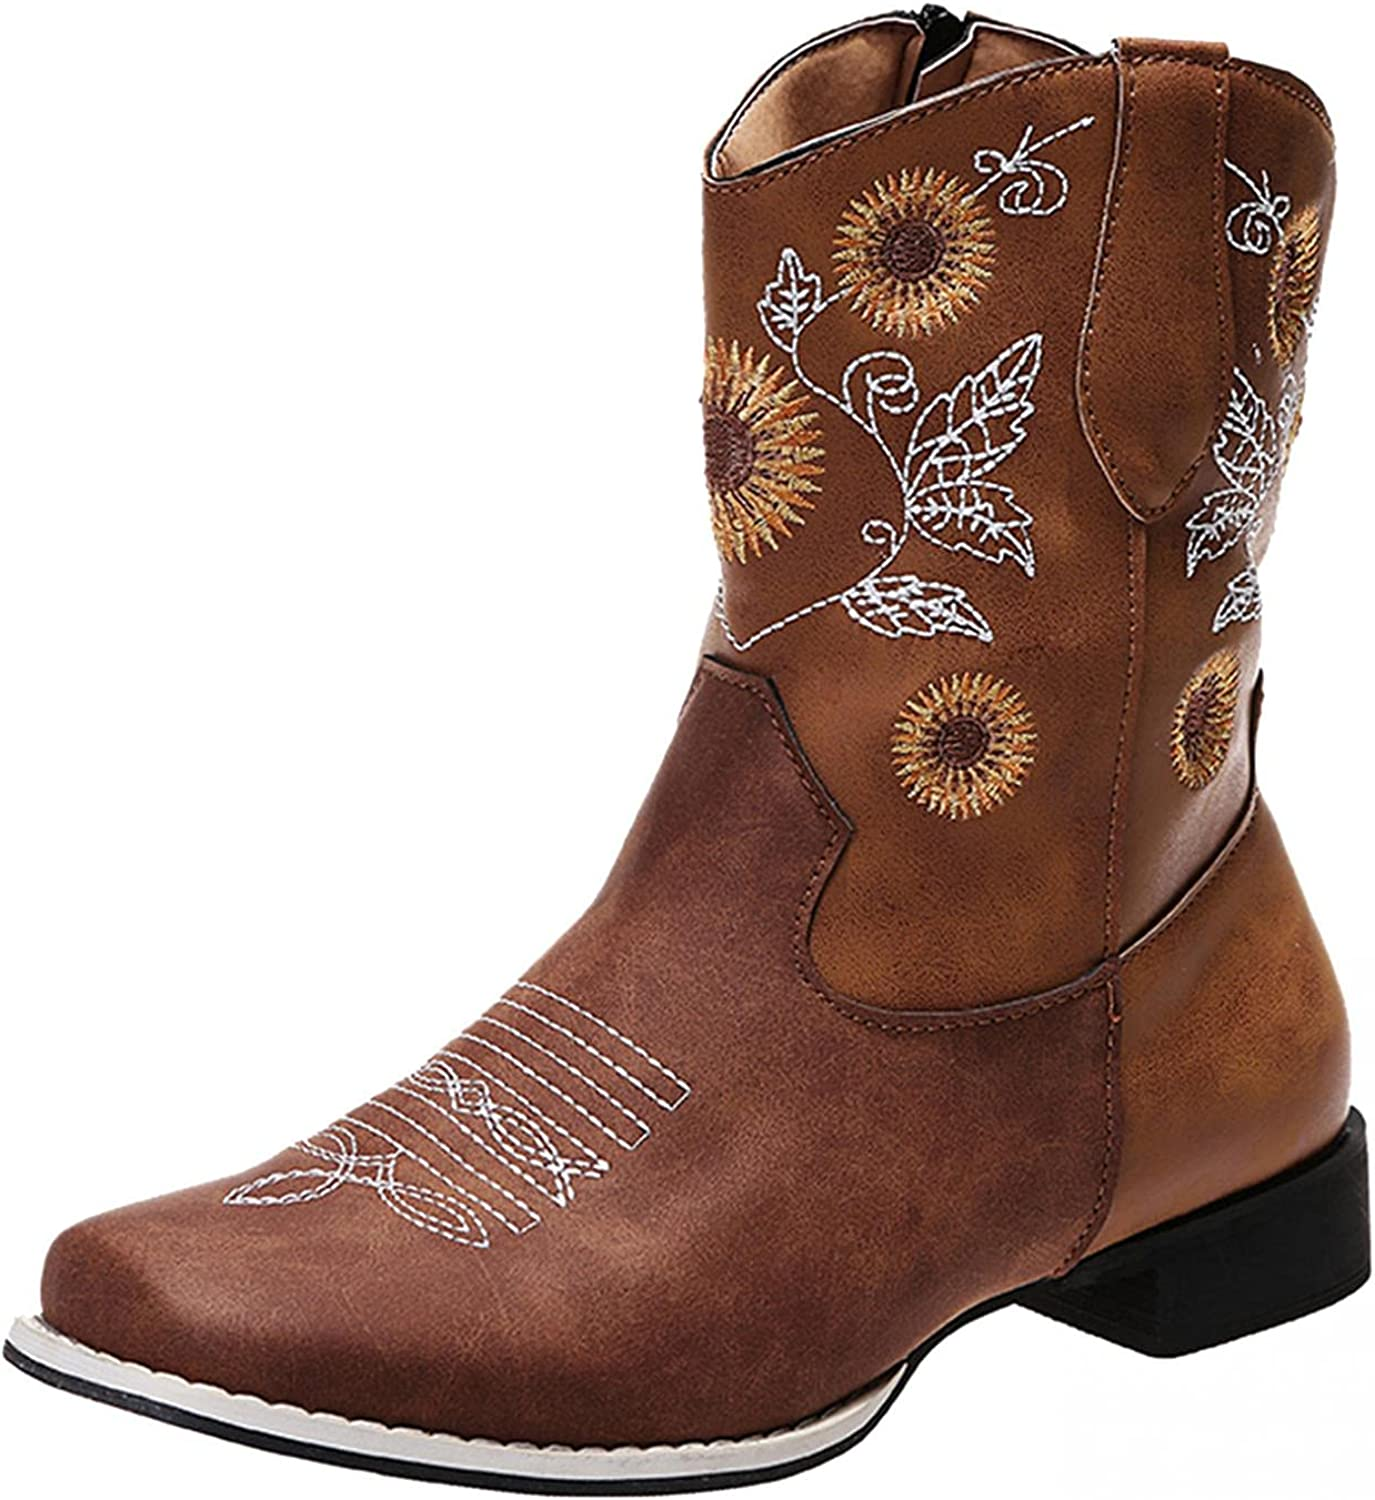 soyienma Cowboy Boots for Women Western Sunflowers Embroidery Cowgirl Boots Mid Calf Boots Chunky Heel Square Toe Pull On Shoes